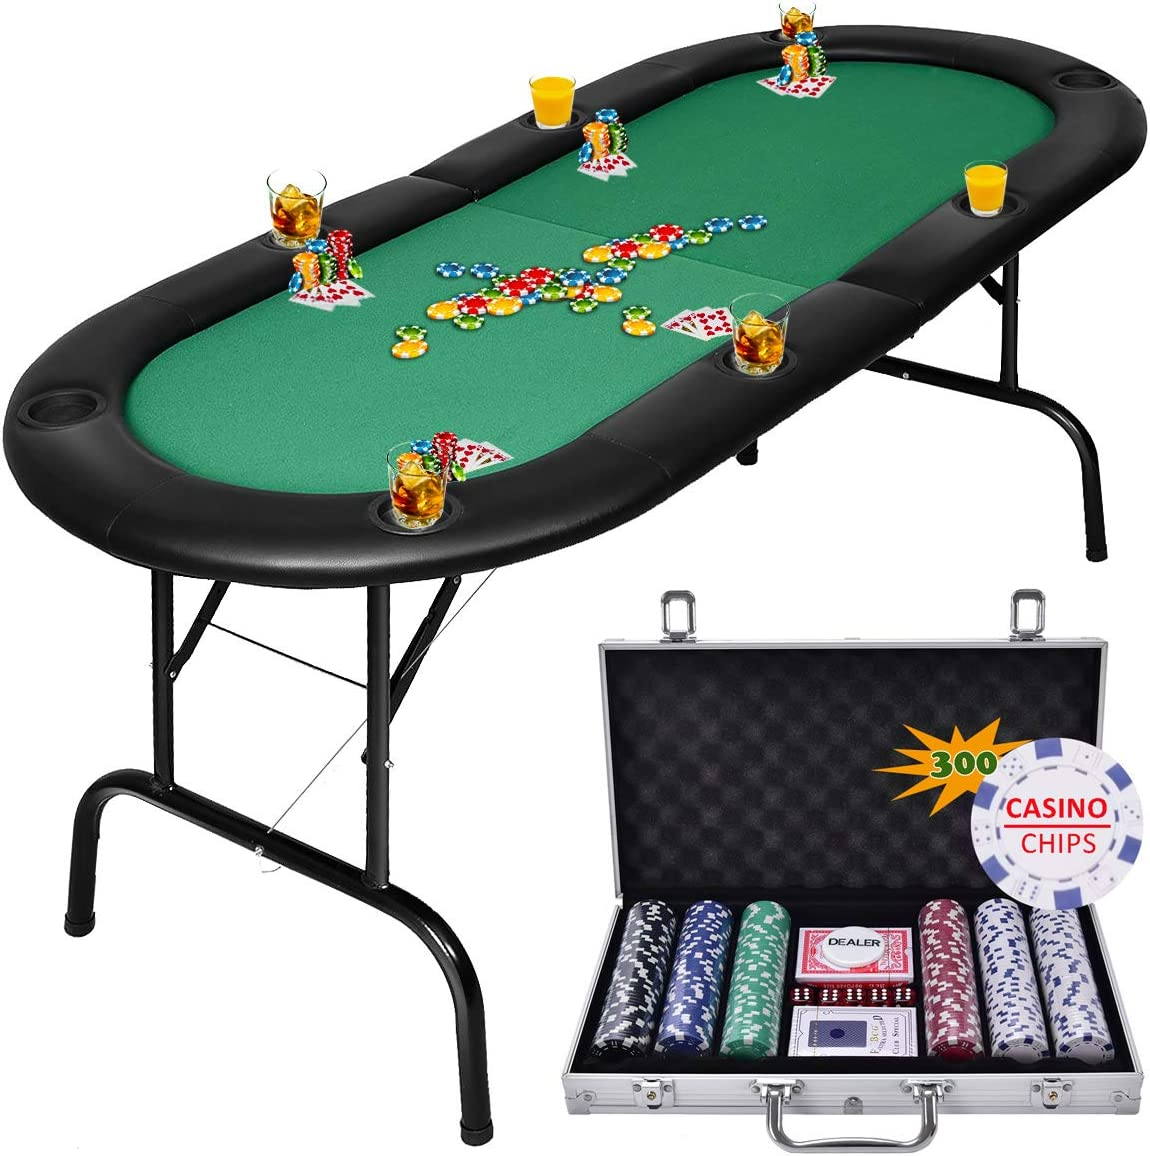 Giantex Folding Play Poker Table w/Cup Holder, for Texas Casino Leisure  Game Room, Foldable Blackjack Table (9 Player (Poker Table))